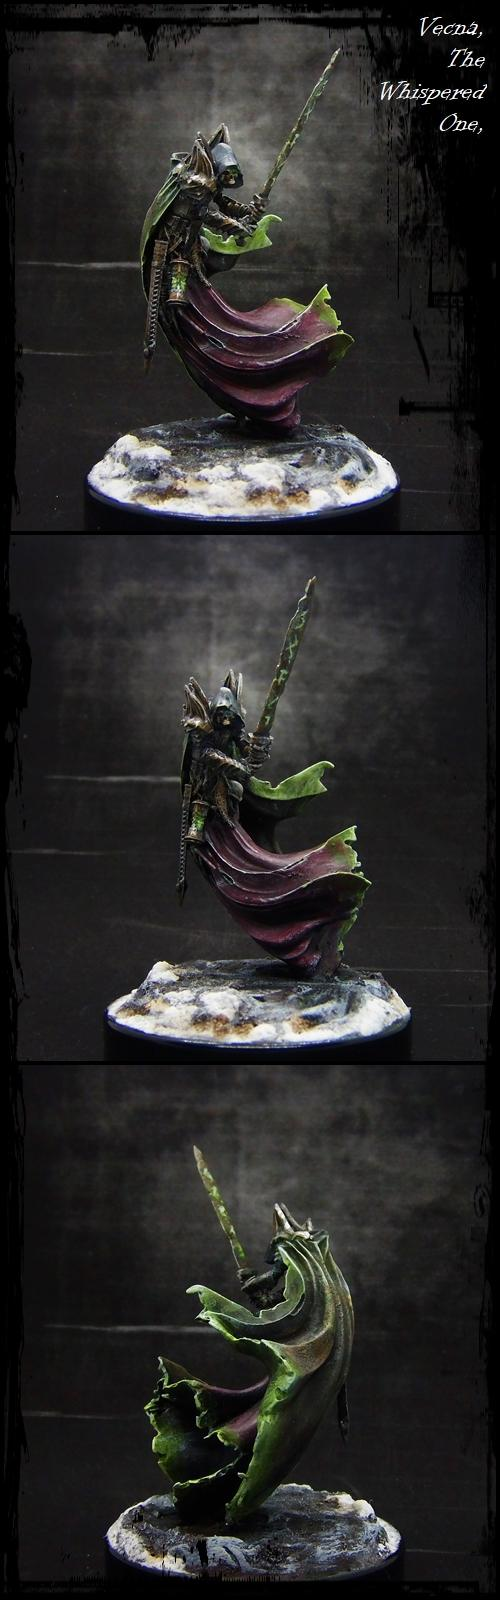 Dungeons And Dragons, Ghost, Lich, Mierce, Undead, Vecna, Villain